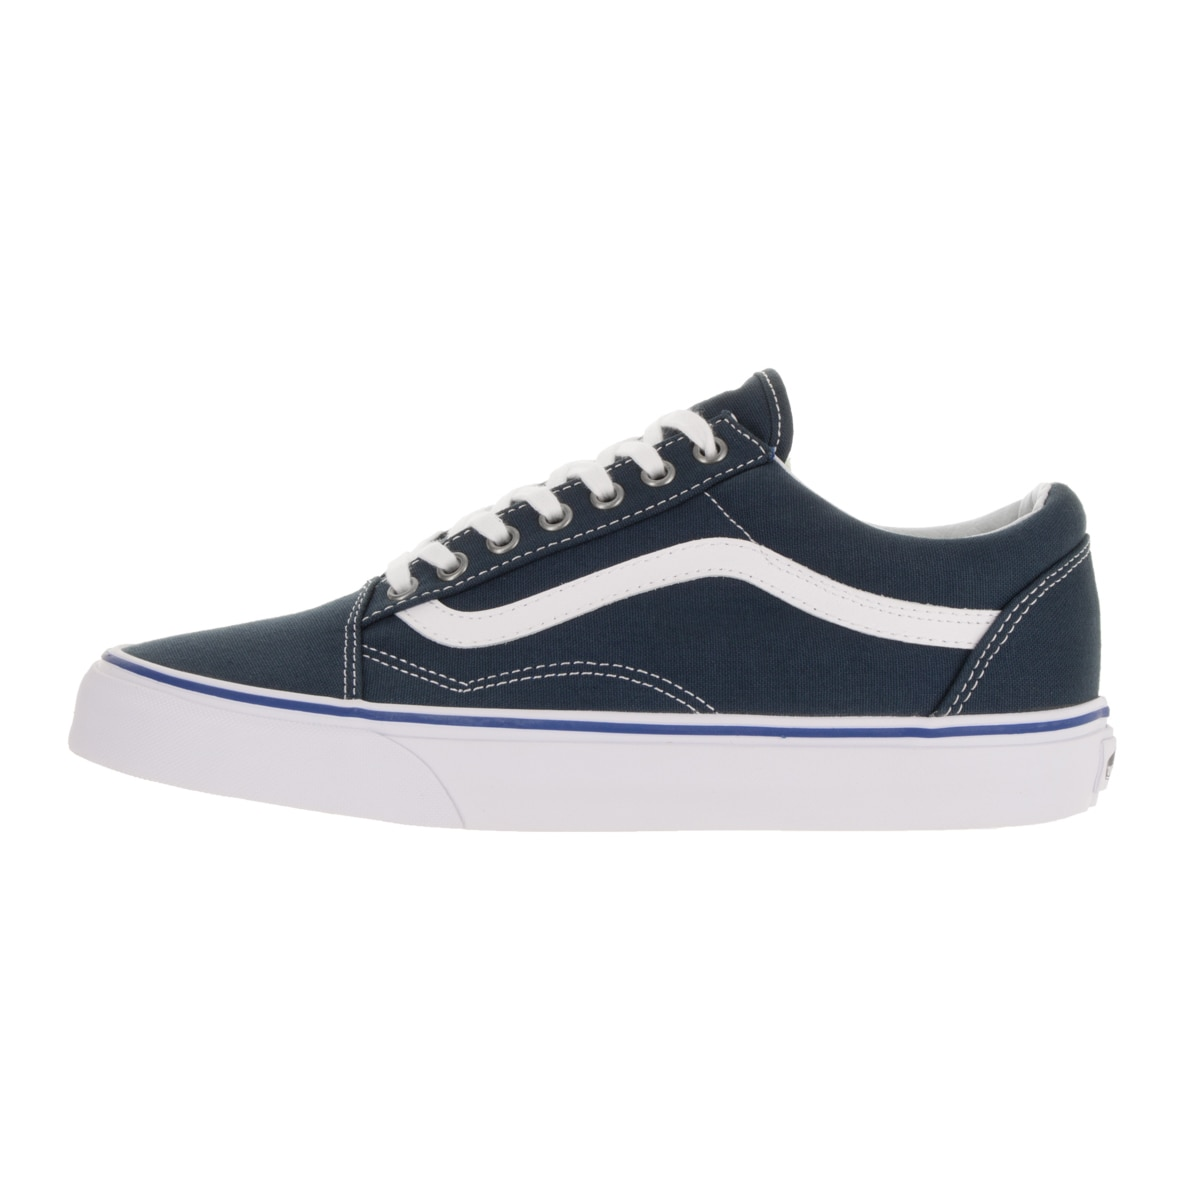 10d1f5b64047 Shop Vans Unisex Old Skool Midnight Navy True White Skate Shoe - Free  Shipping Today - Overstock - 13394982